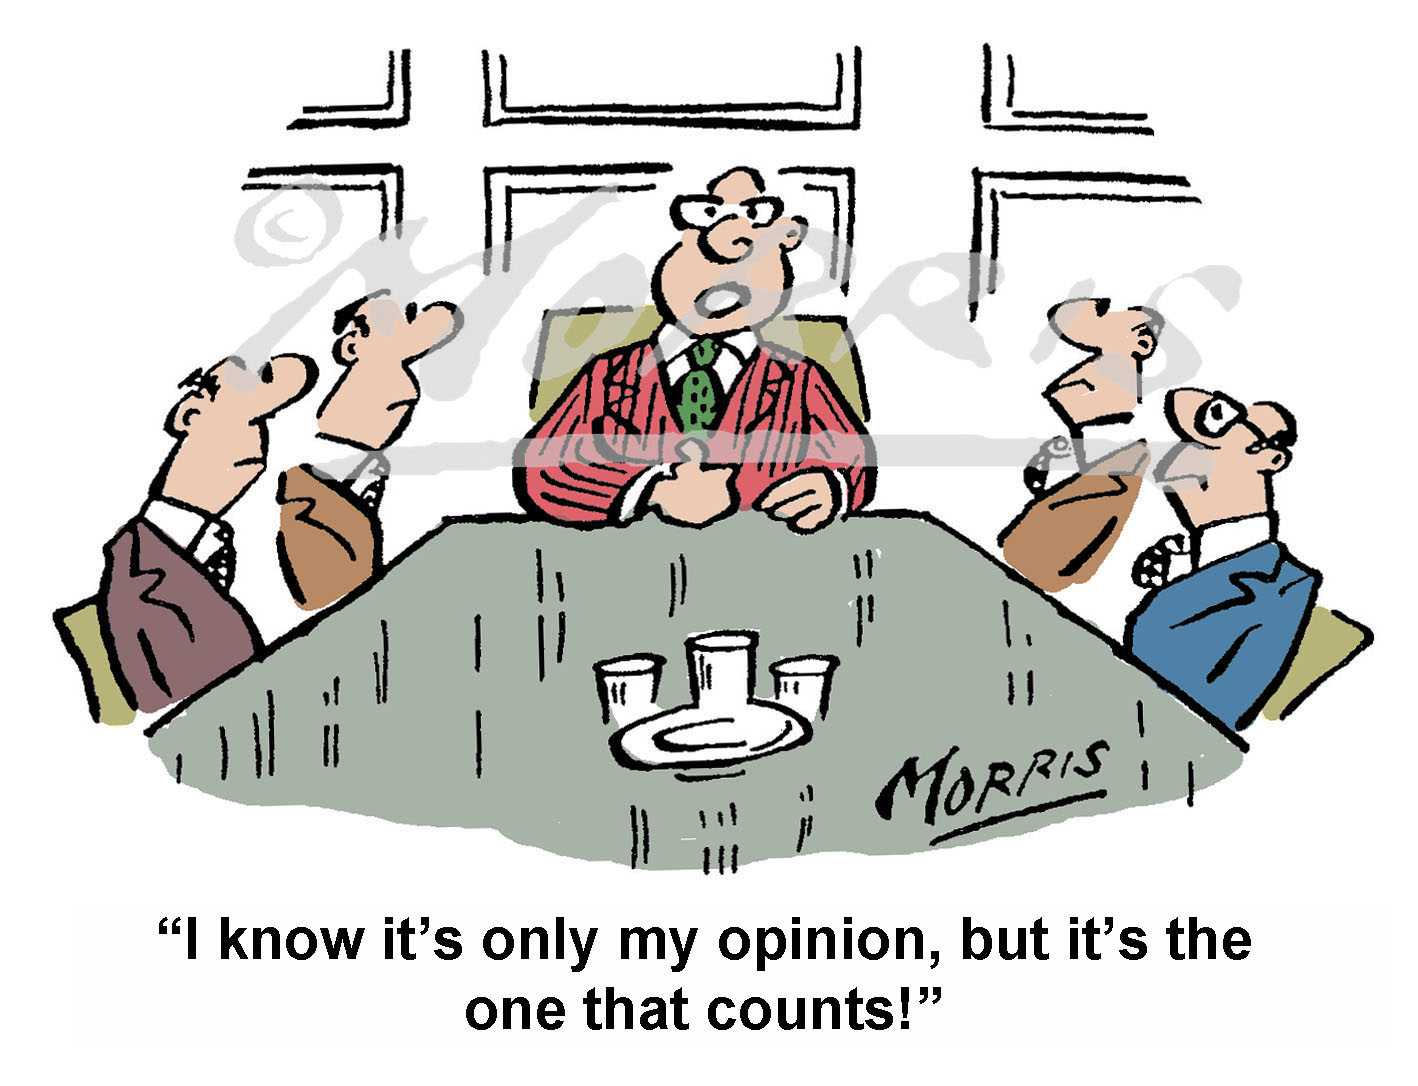 Boardroom, Chairman, Manager cartoon – Ref: 6165col